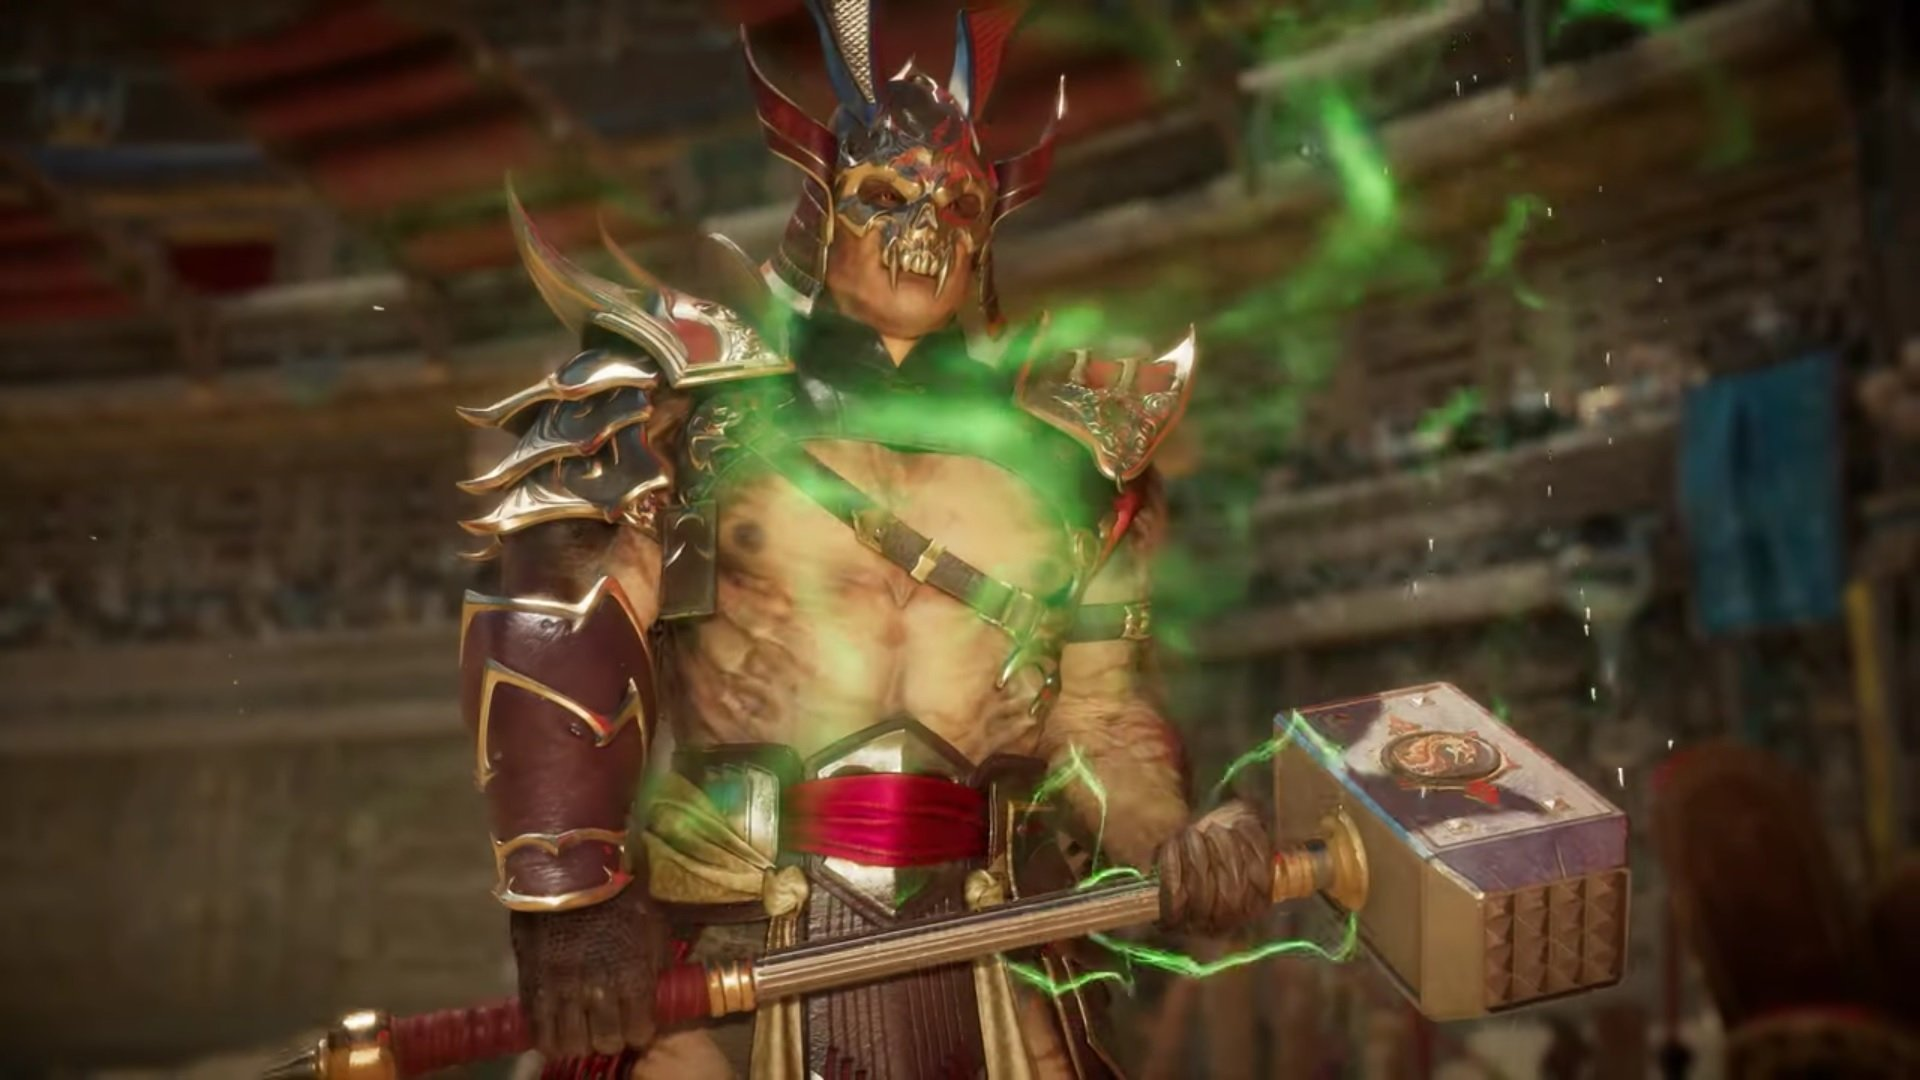 Shao Kahn looks to bring the BS to Mortal Kombat 11 screenshot